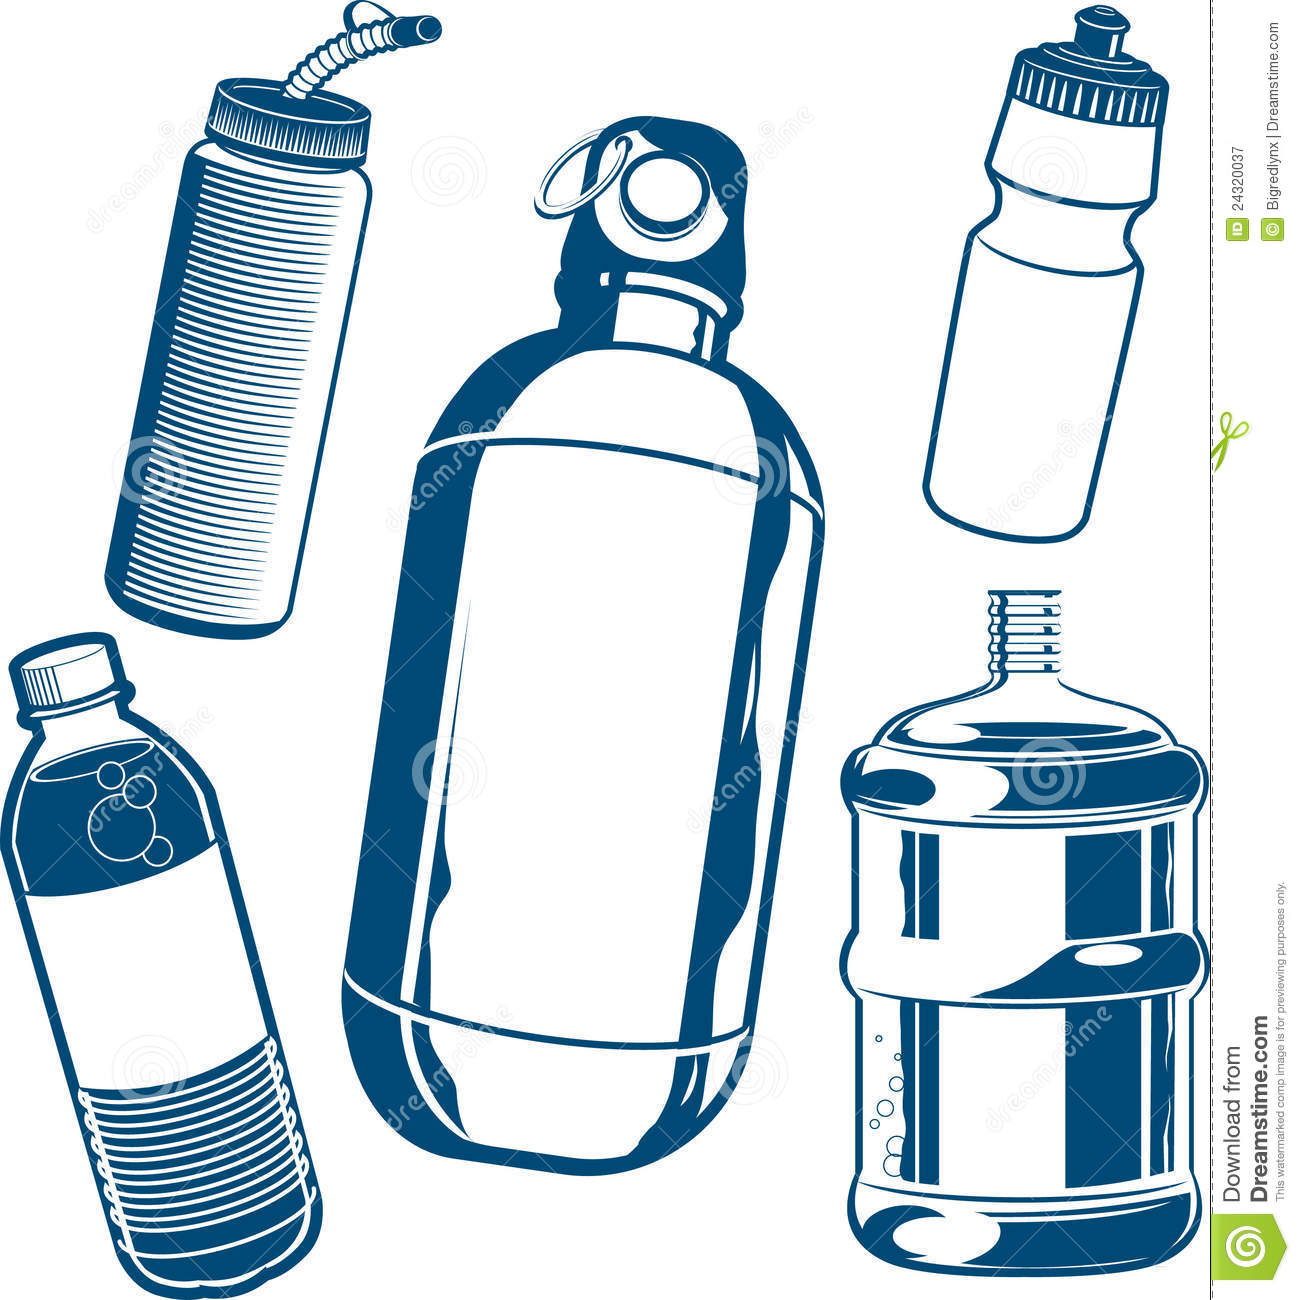 water bottle clip art hd clipart panda free clipart images rh clipartpanda com clipart panda water bottle office clipart water bottle